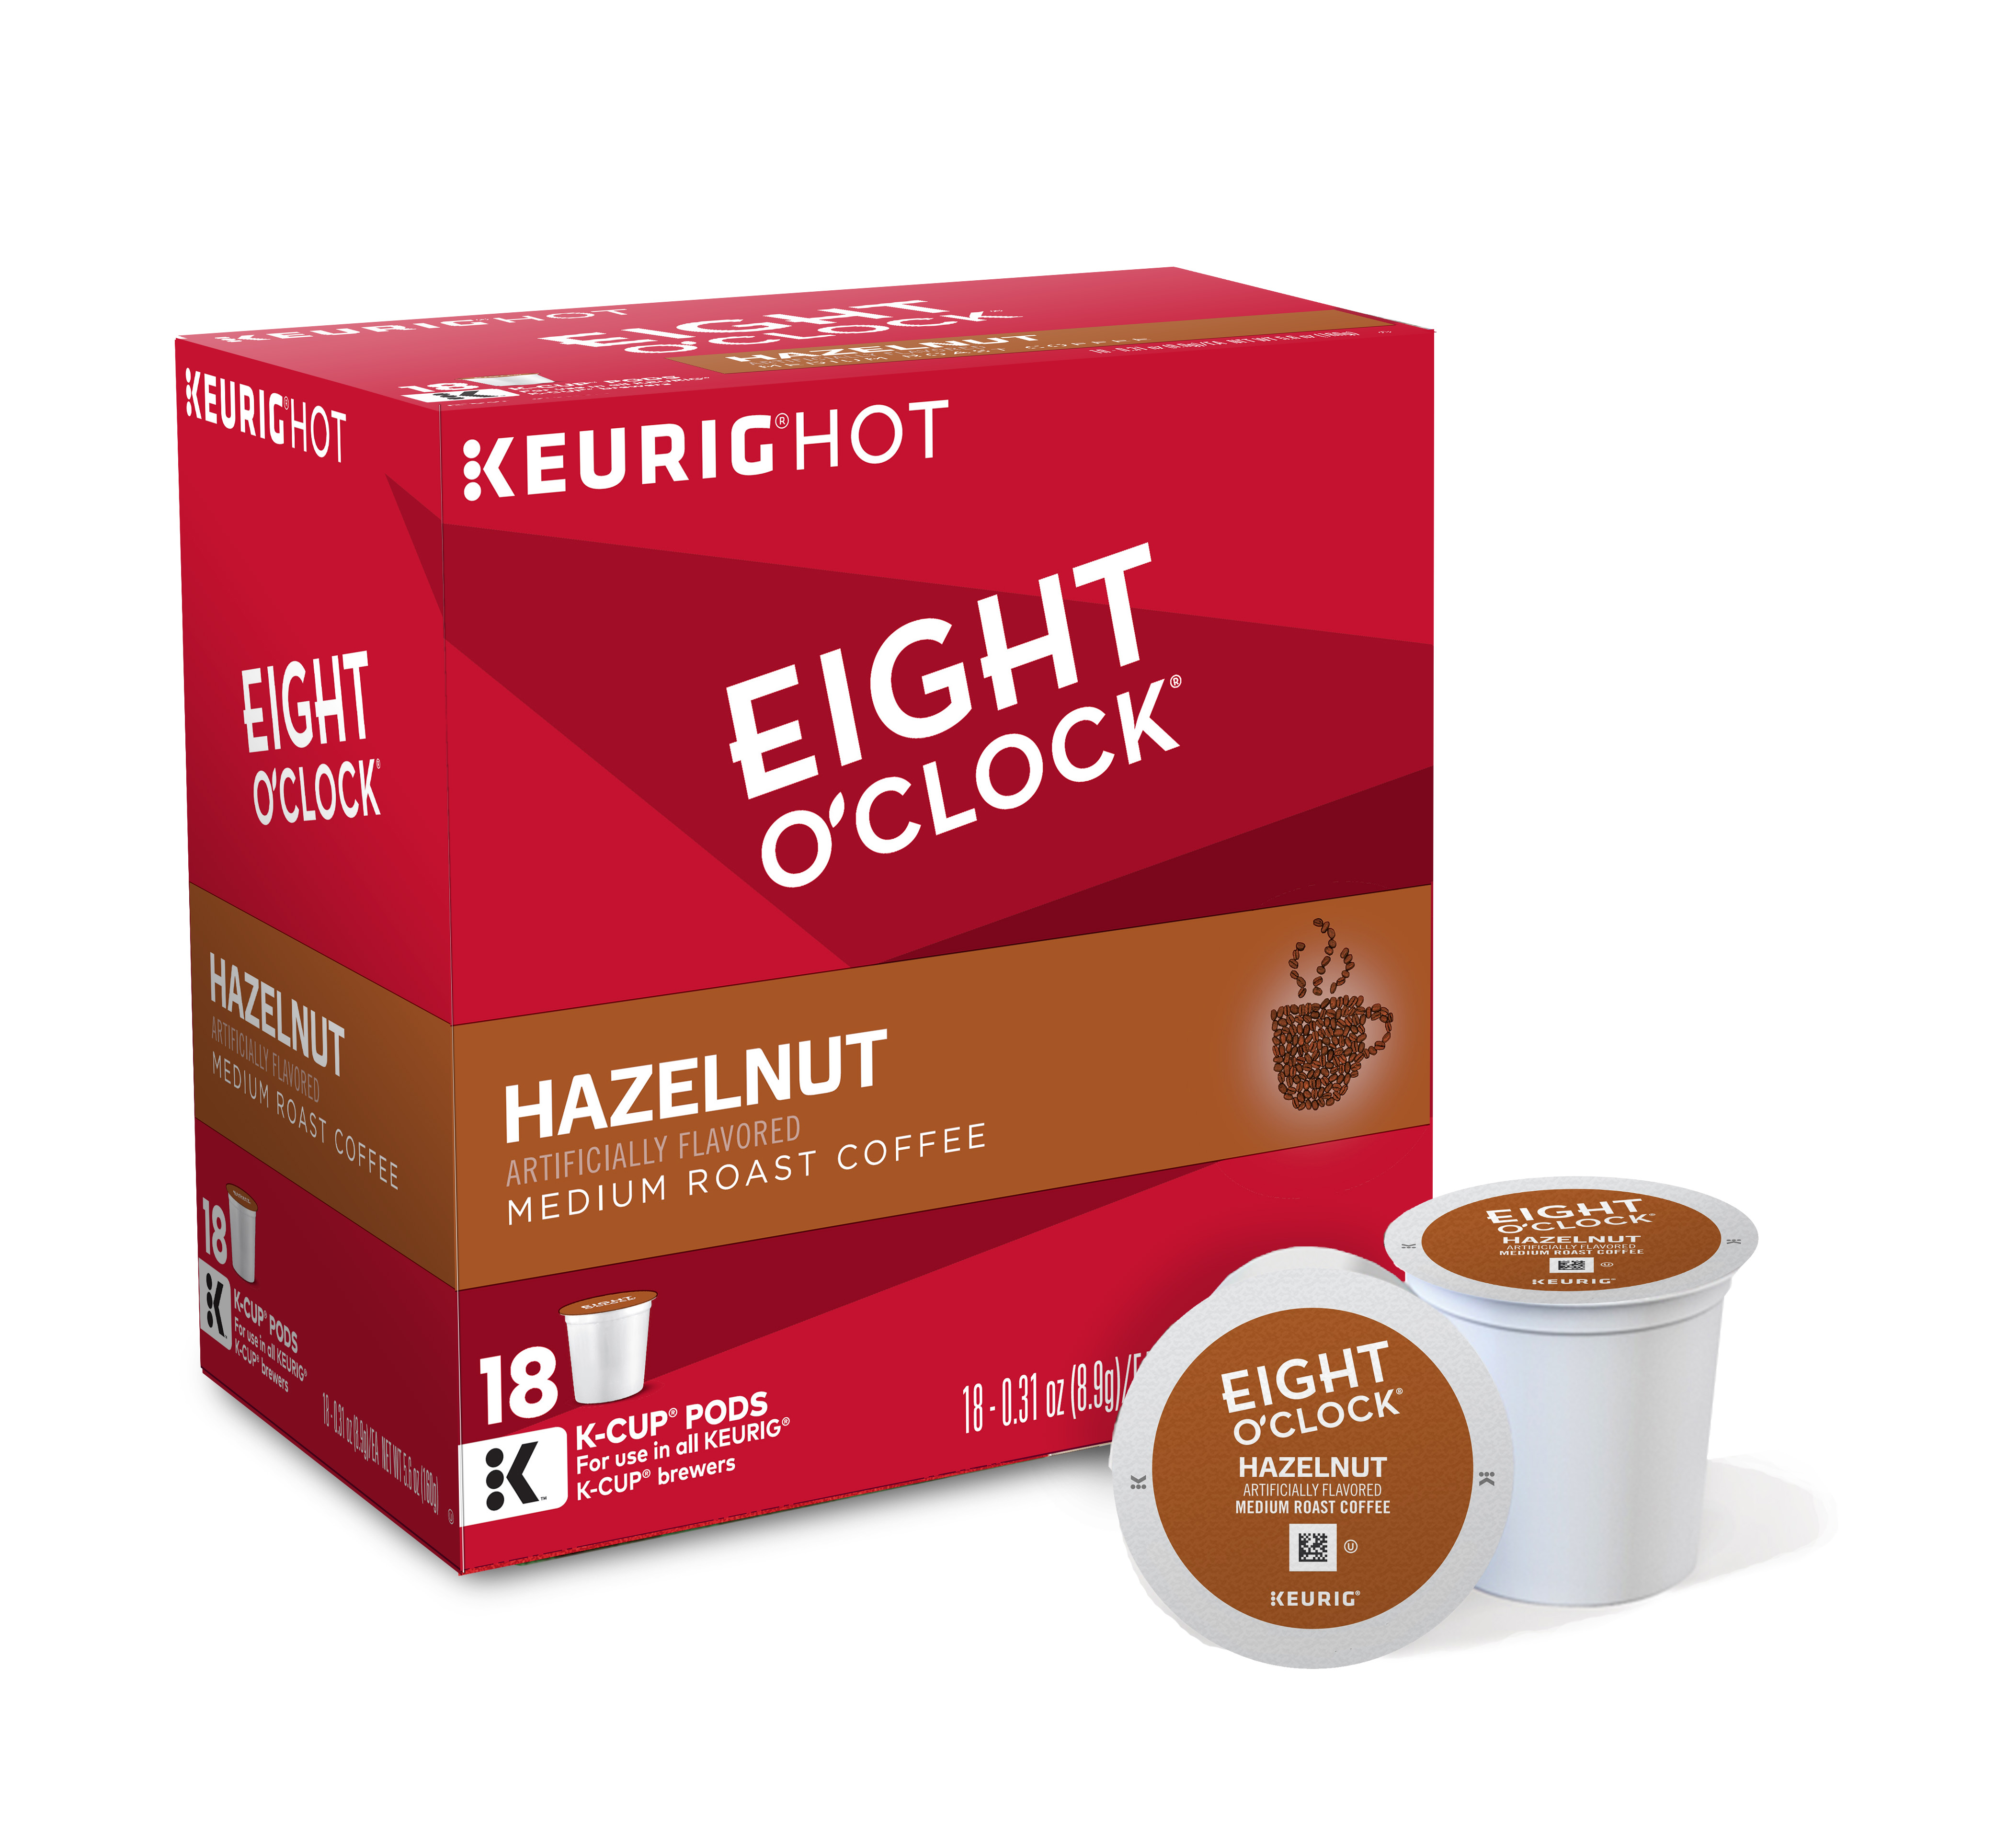 Eight O'Clock Coffee Hazelnut Keurig Single-Serve K-Cup Pods, Medium Roast Coffee, 18 Count